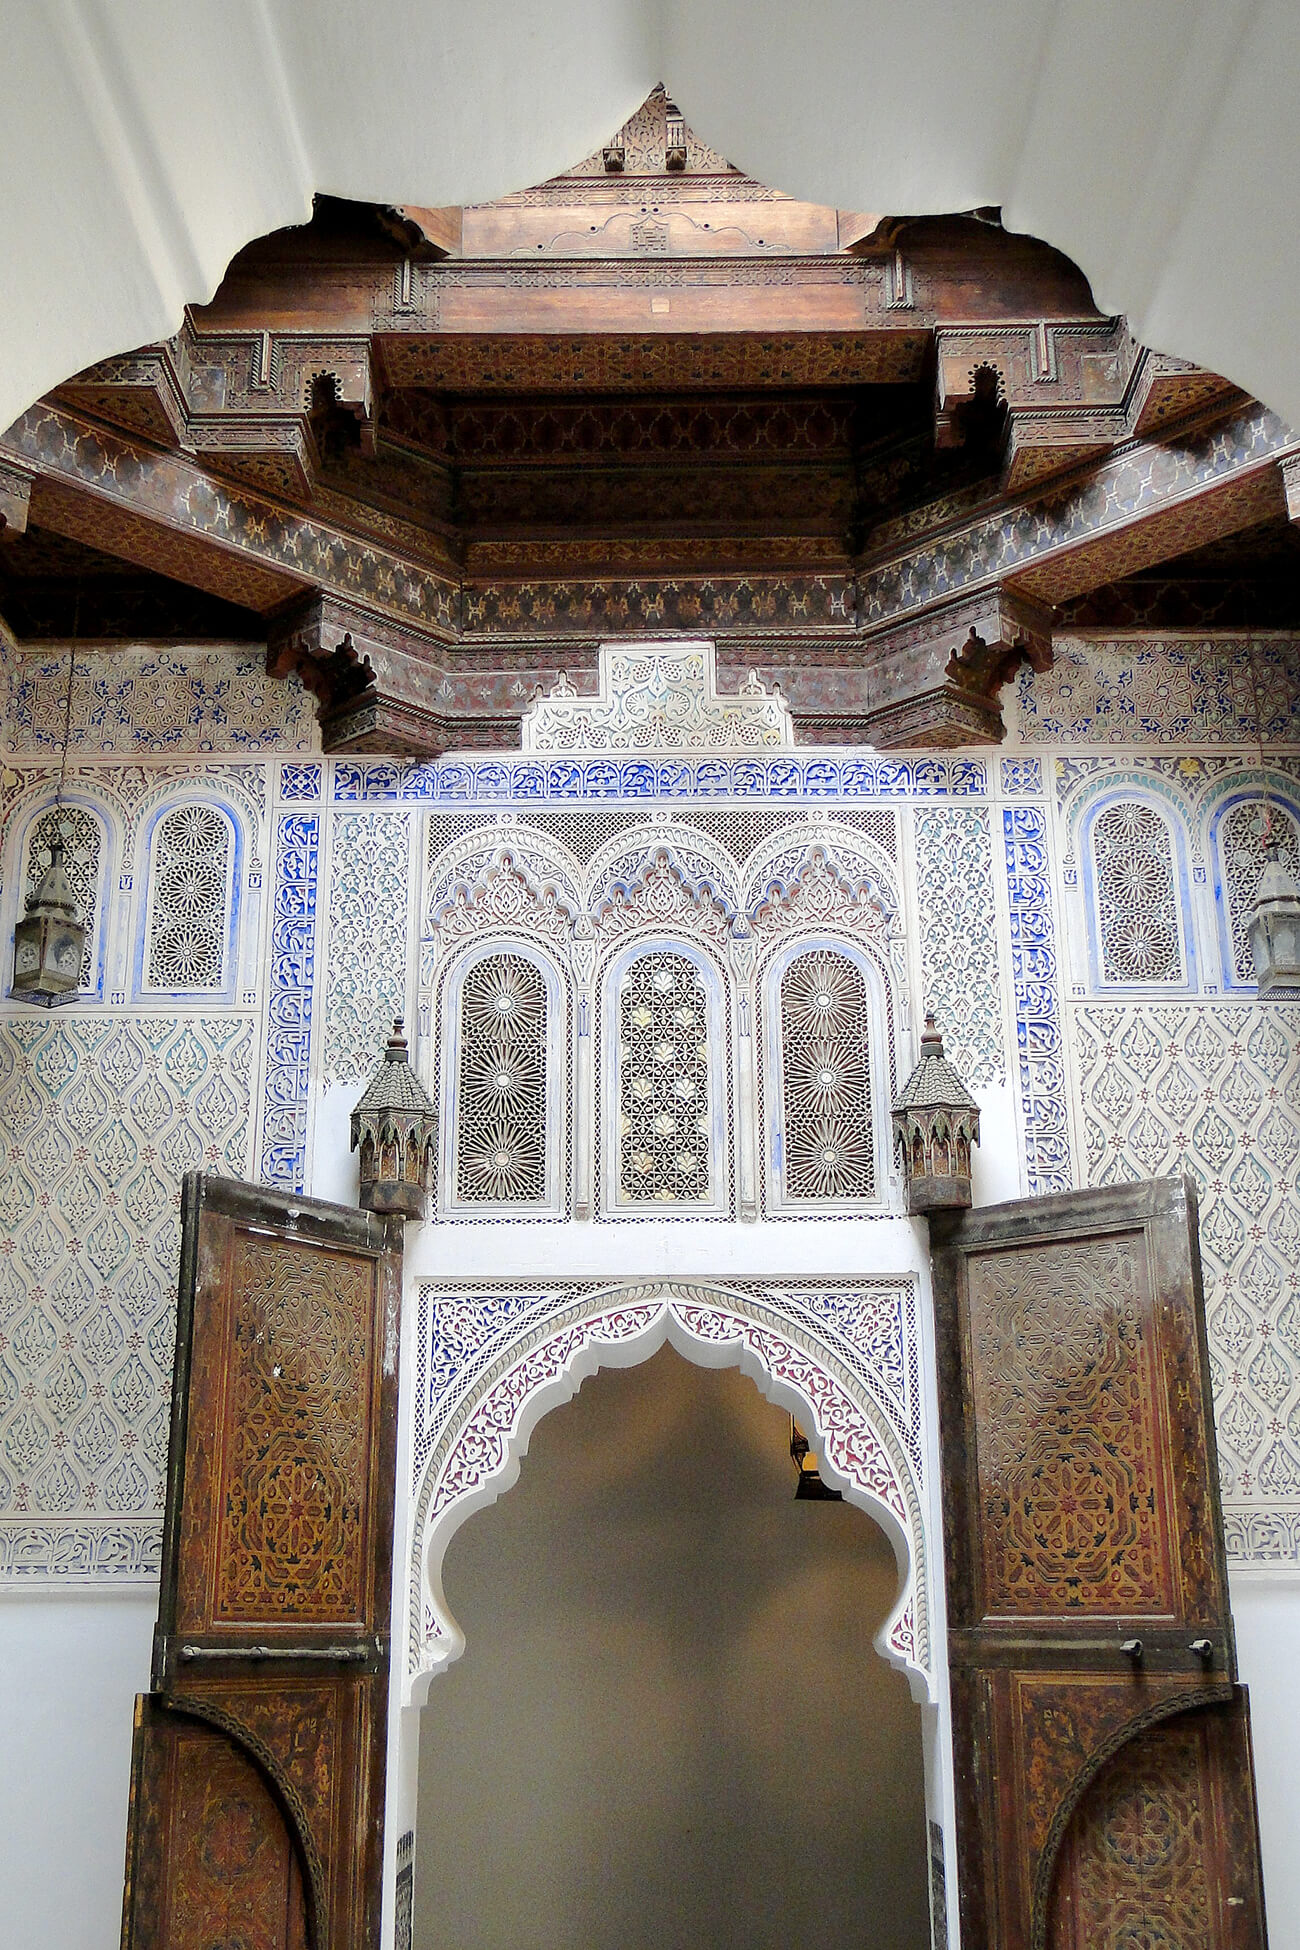 Sahara Desert Tour - What to See and Do in Meknes, one of Morocco's Grandest Ancient Cities - Dar Jamai Museum